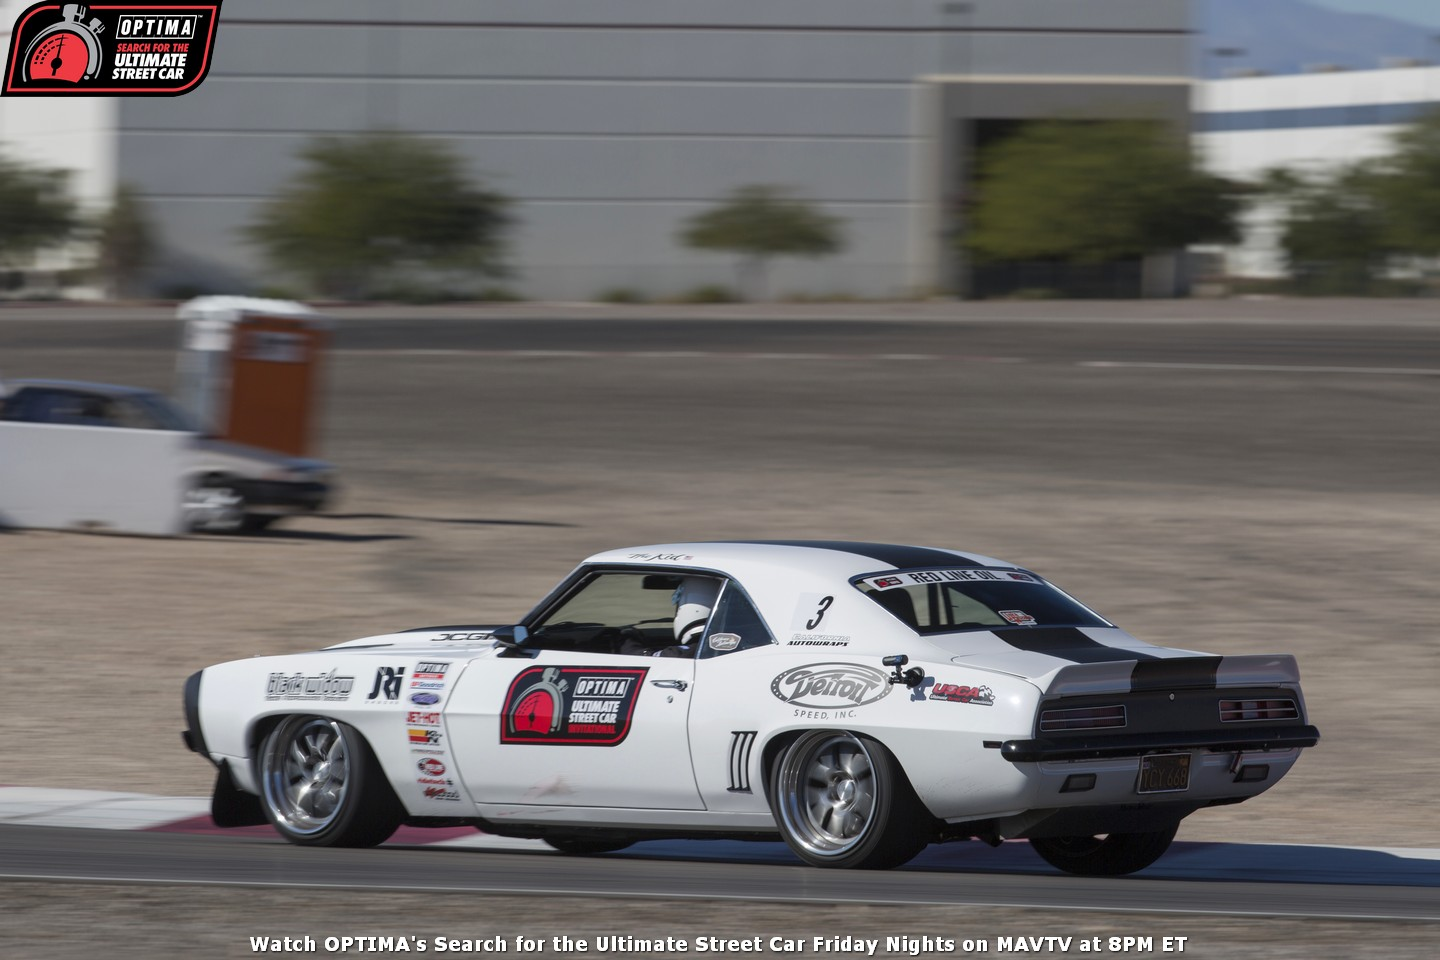 1p-Jake-Rozelle-1969-Chevrolet-Camaro-OPTIMA-Ultimate-Street-Car-Invitational-2014-BFGoodrich-Hot-Lap-Challenge_48.jpg